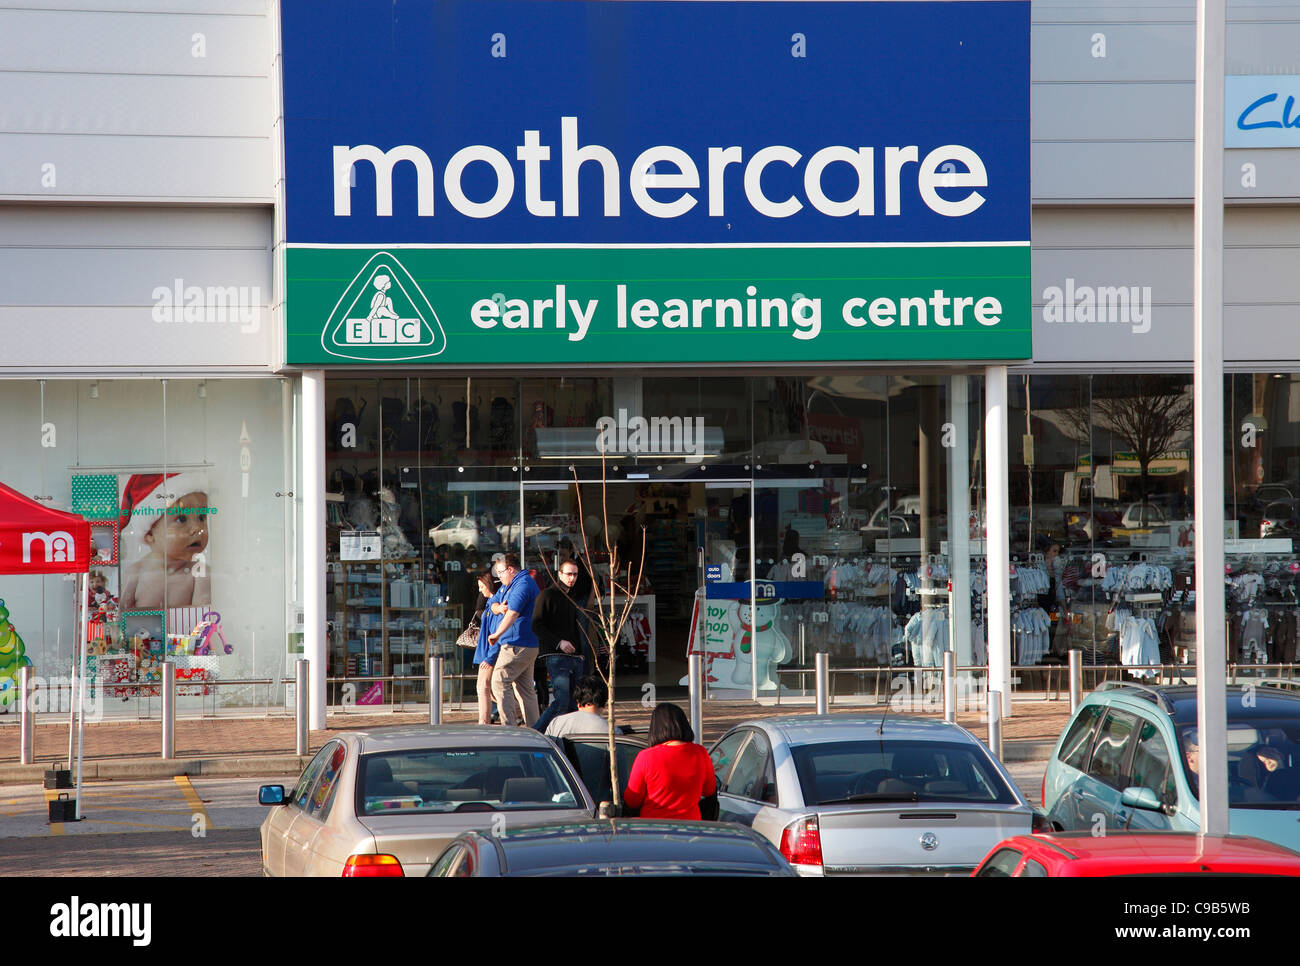 A Mothercare store & Early Learning Centre in Nottingham, England, U.K. - Stock Image